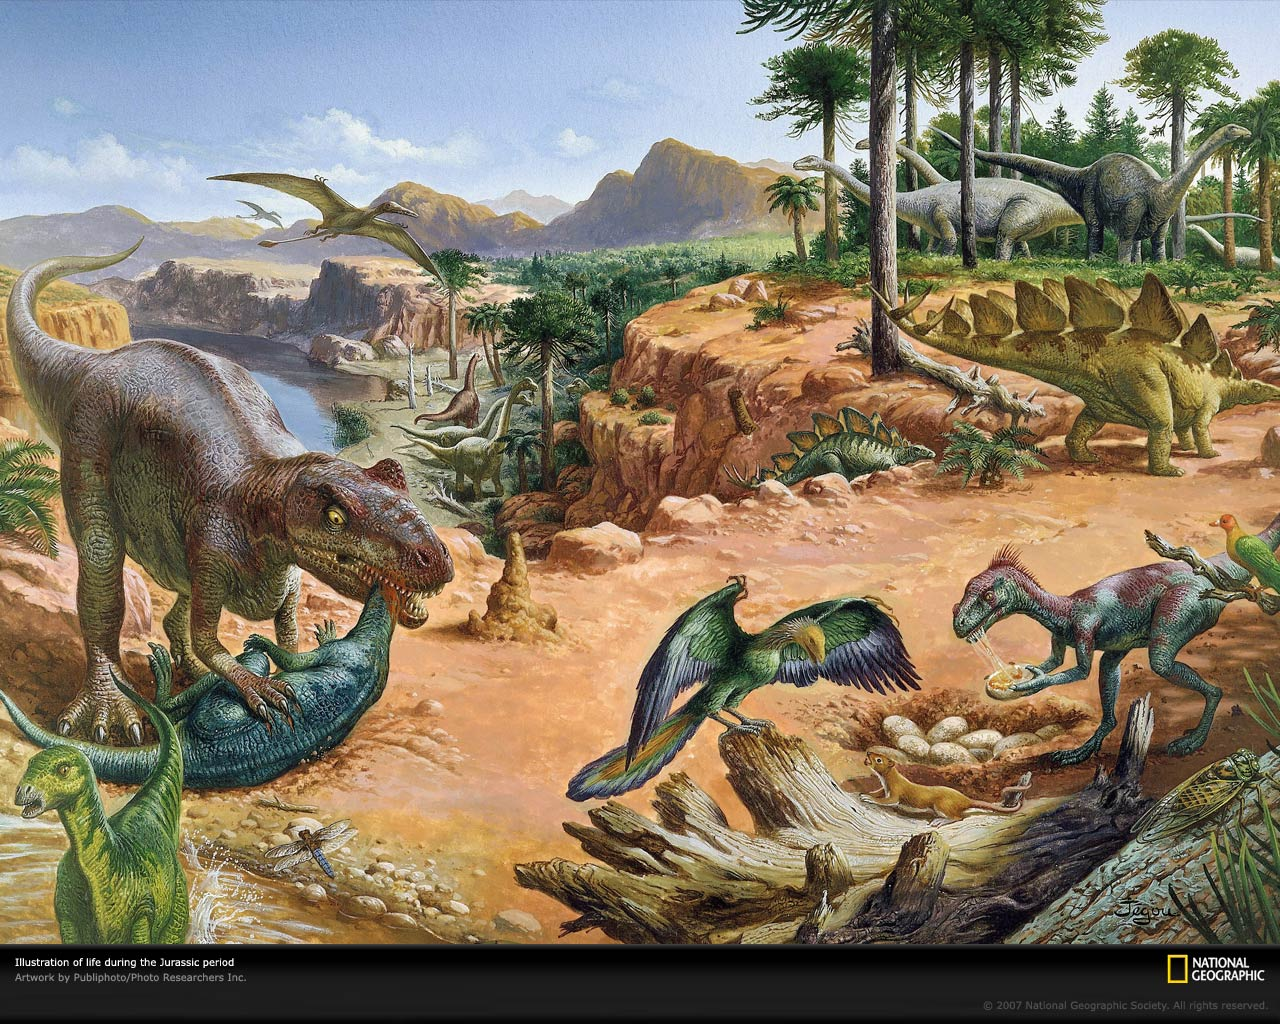 The Dinosaurs of Earth...